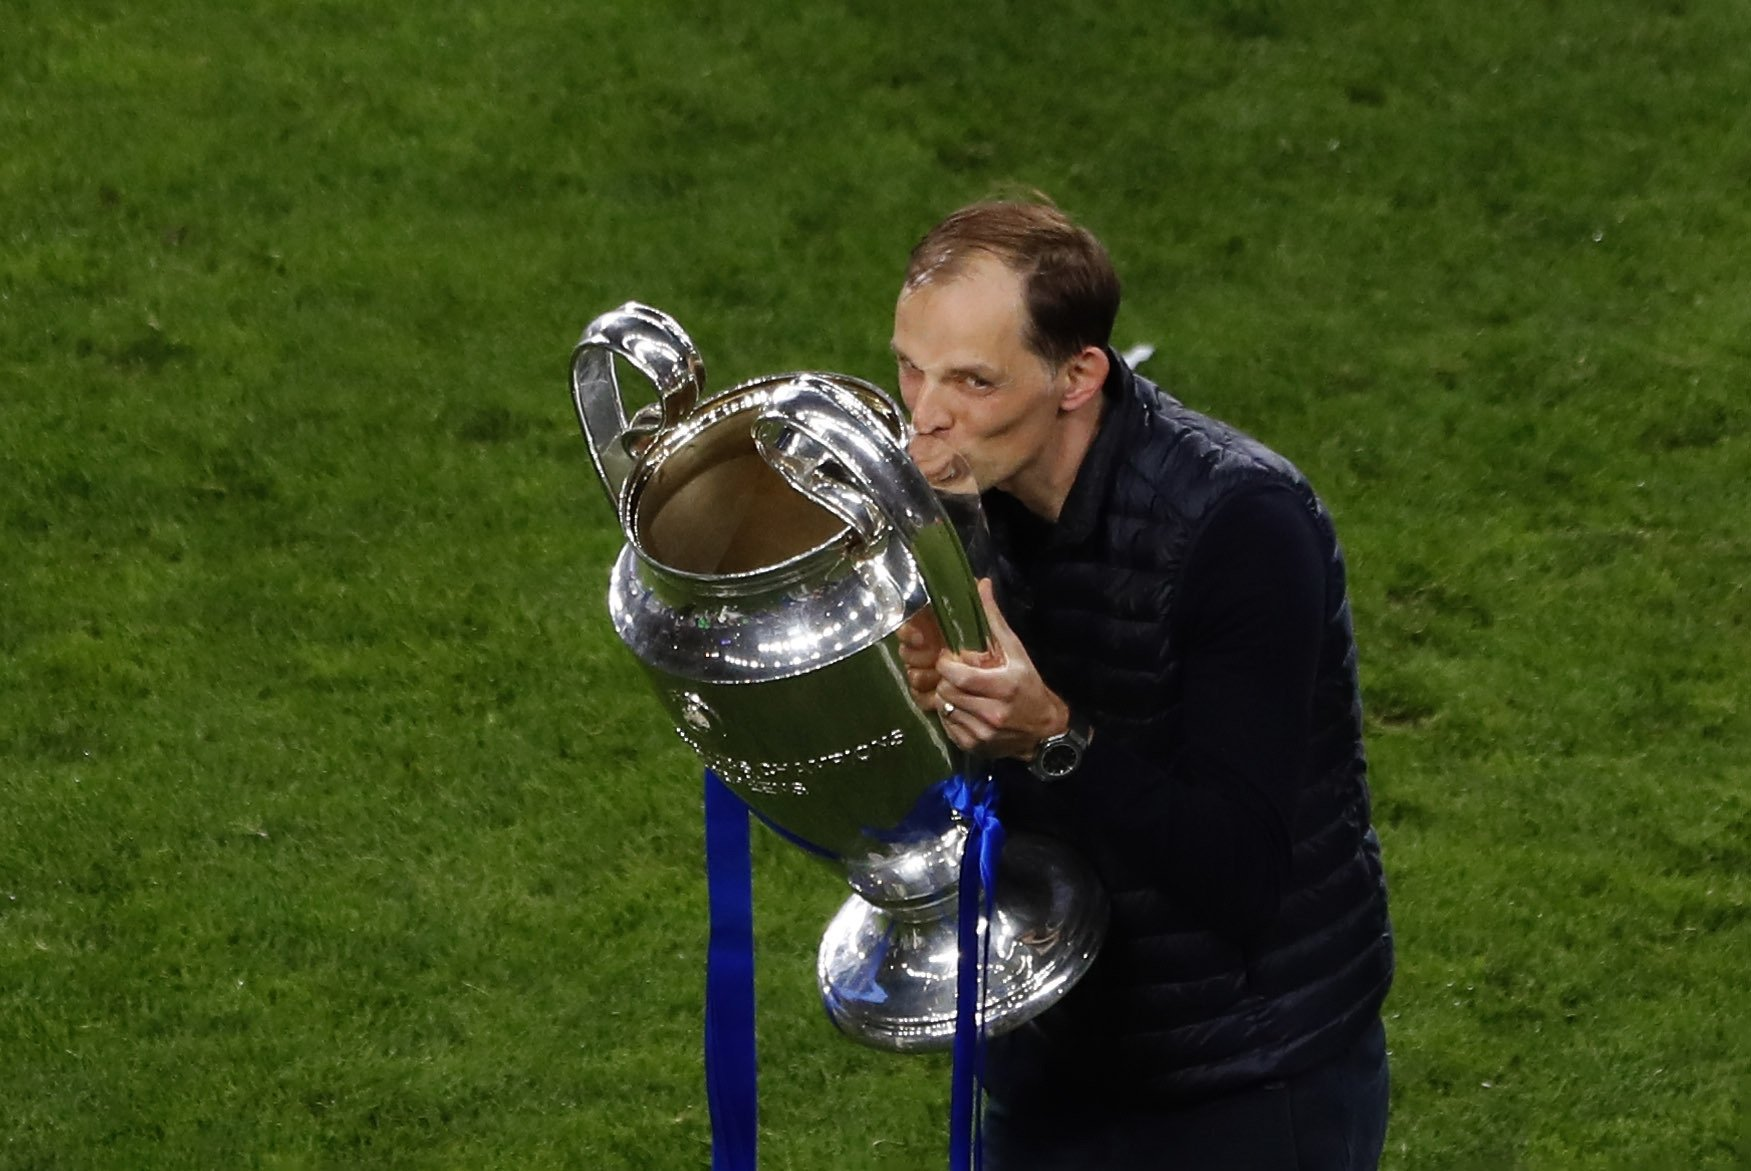 Chelsea's head coach Thomas Tuchel celebrates by kissing the trophy after winning the Champions League final match against Manchester City at Dragao Stadium in Porto, Portugal, May 29, 2021. (AP Photo)